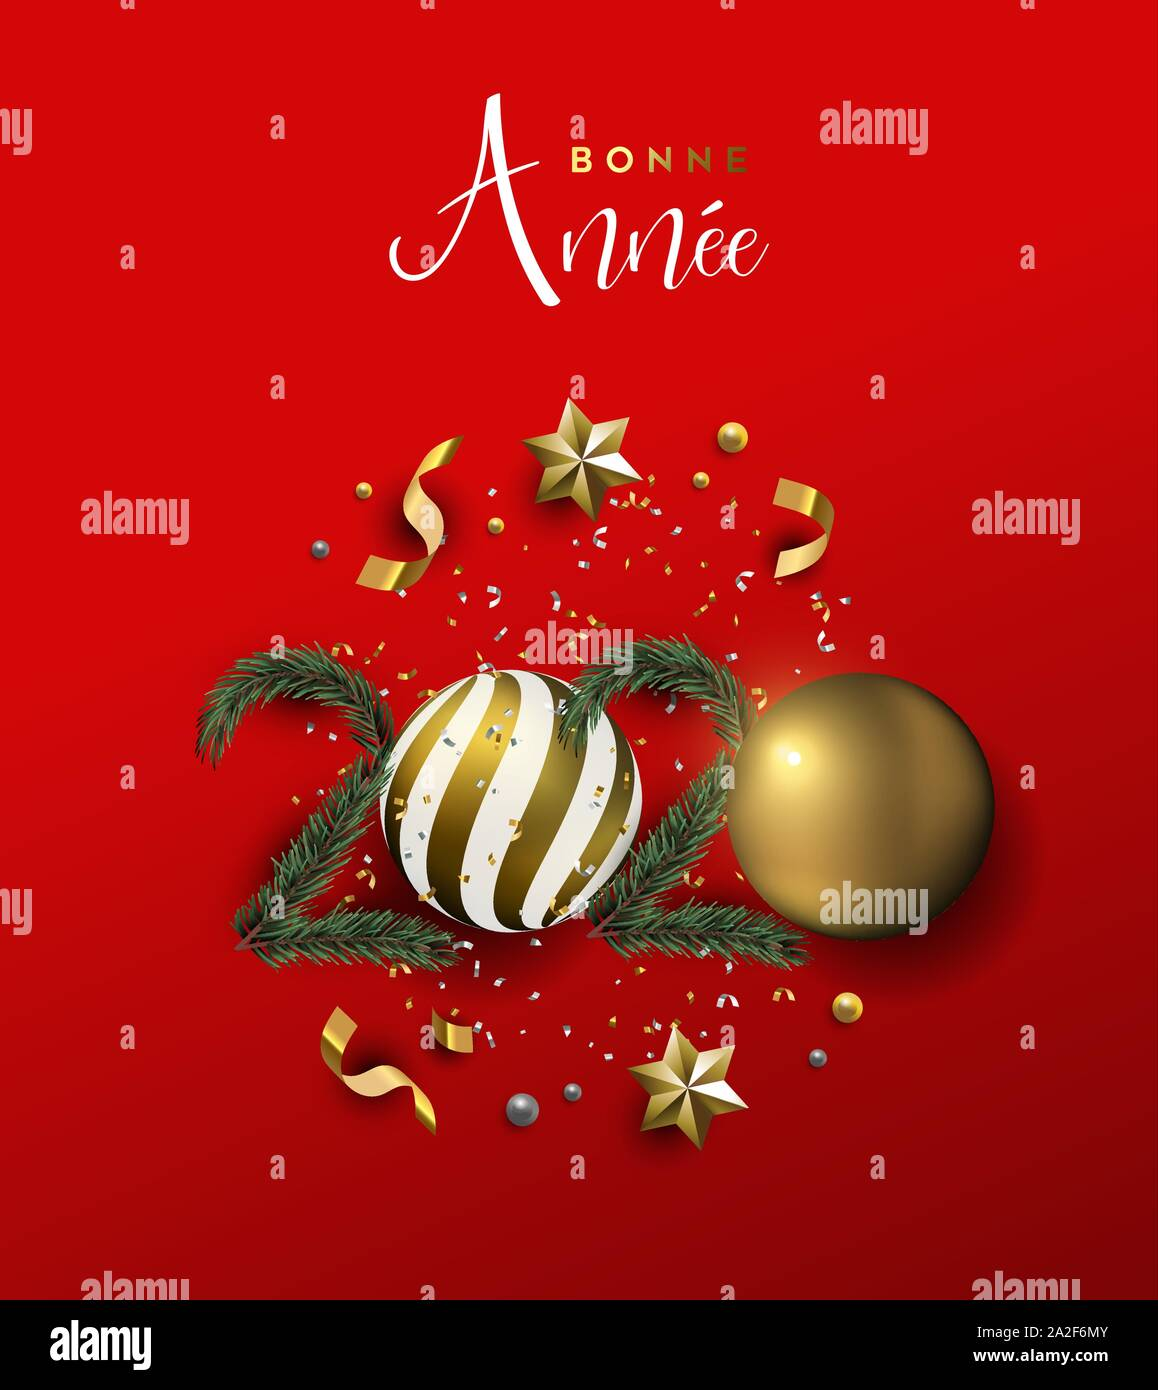 Happy New Year french language greeting card of gold 3d holiday